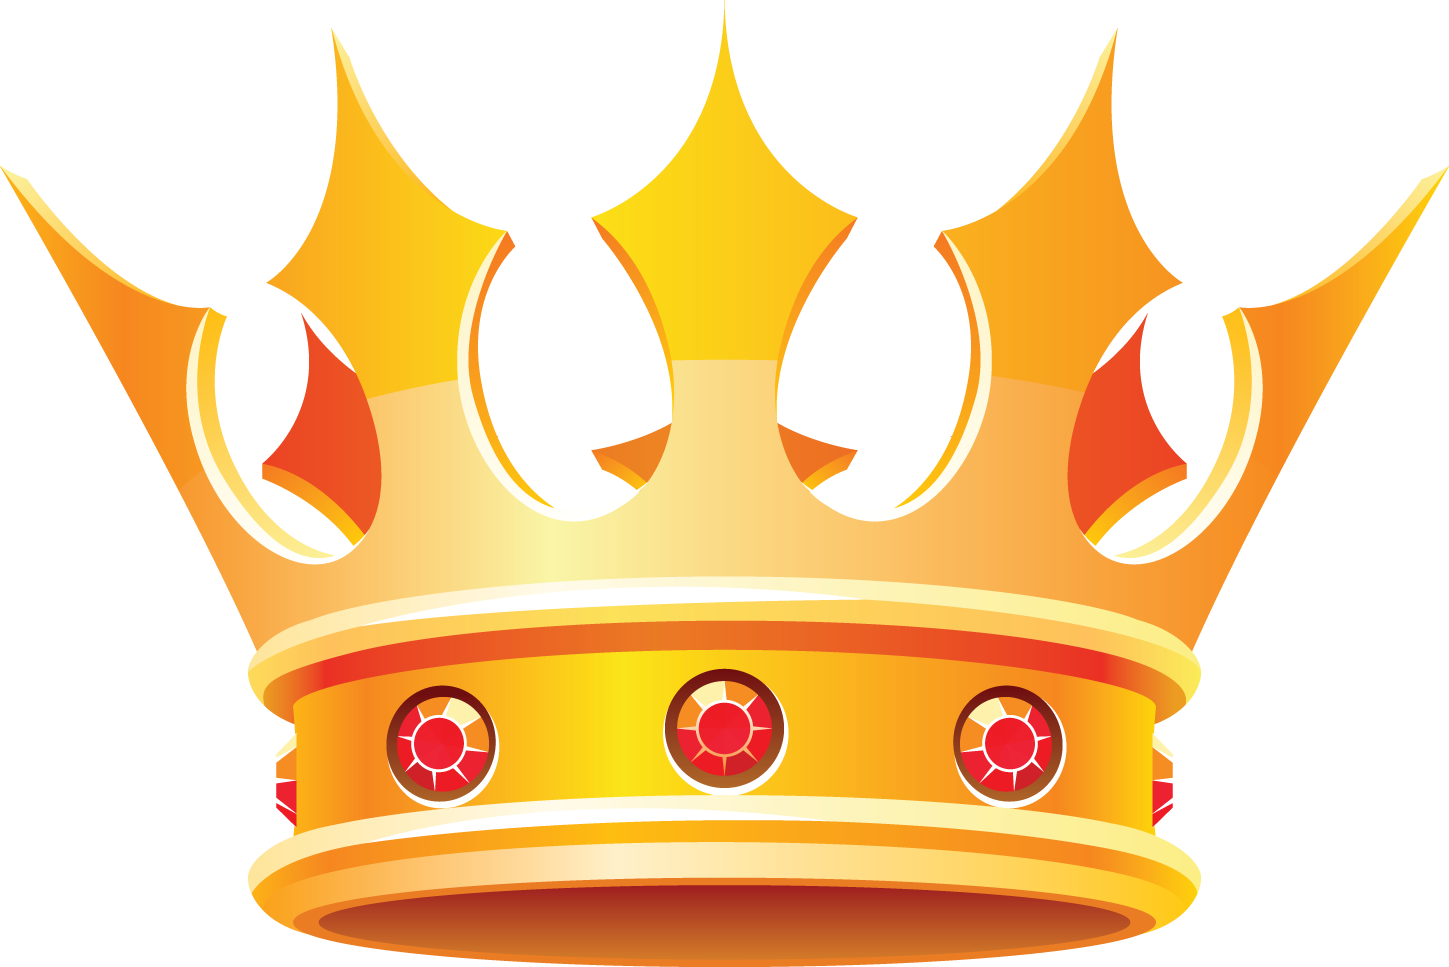 Gold keep calm and carry on crown clipart image library download Crown Clipart With Transpa Background ✓ All About Clipart image library download